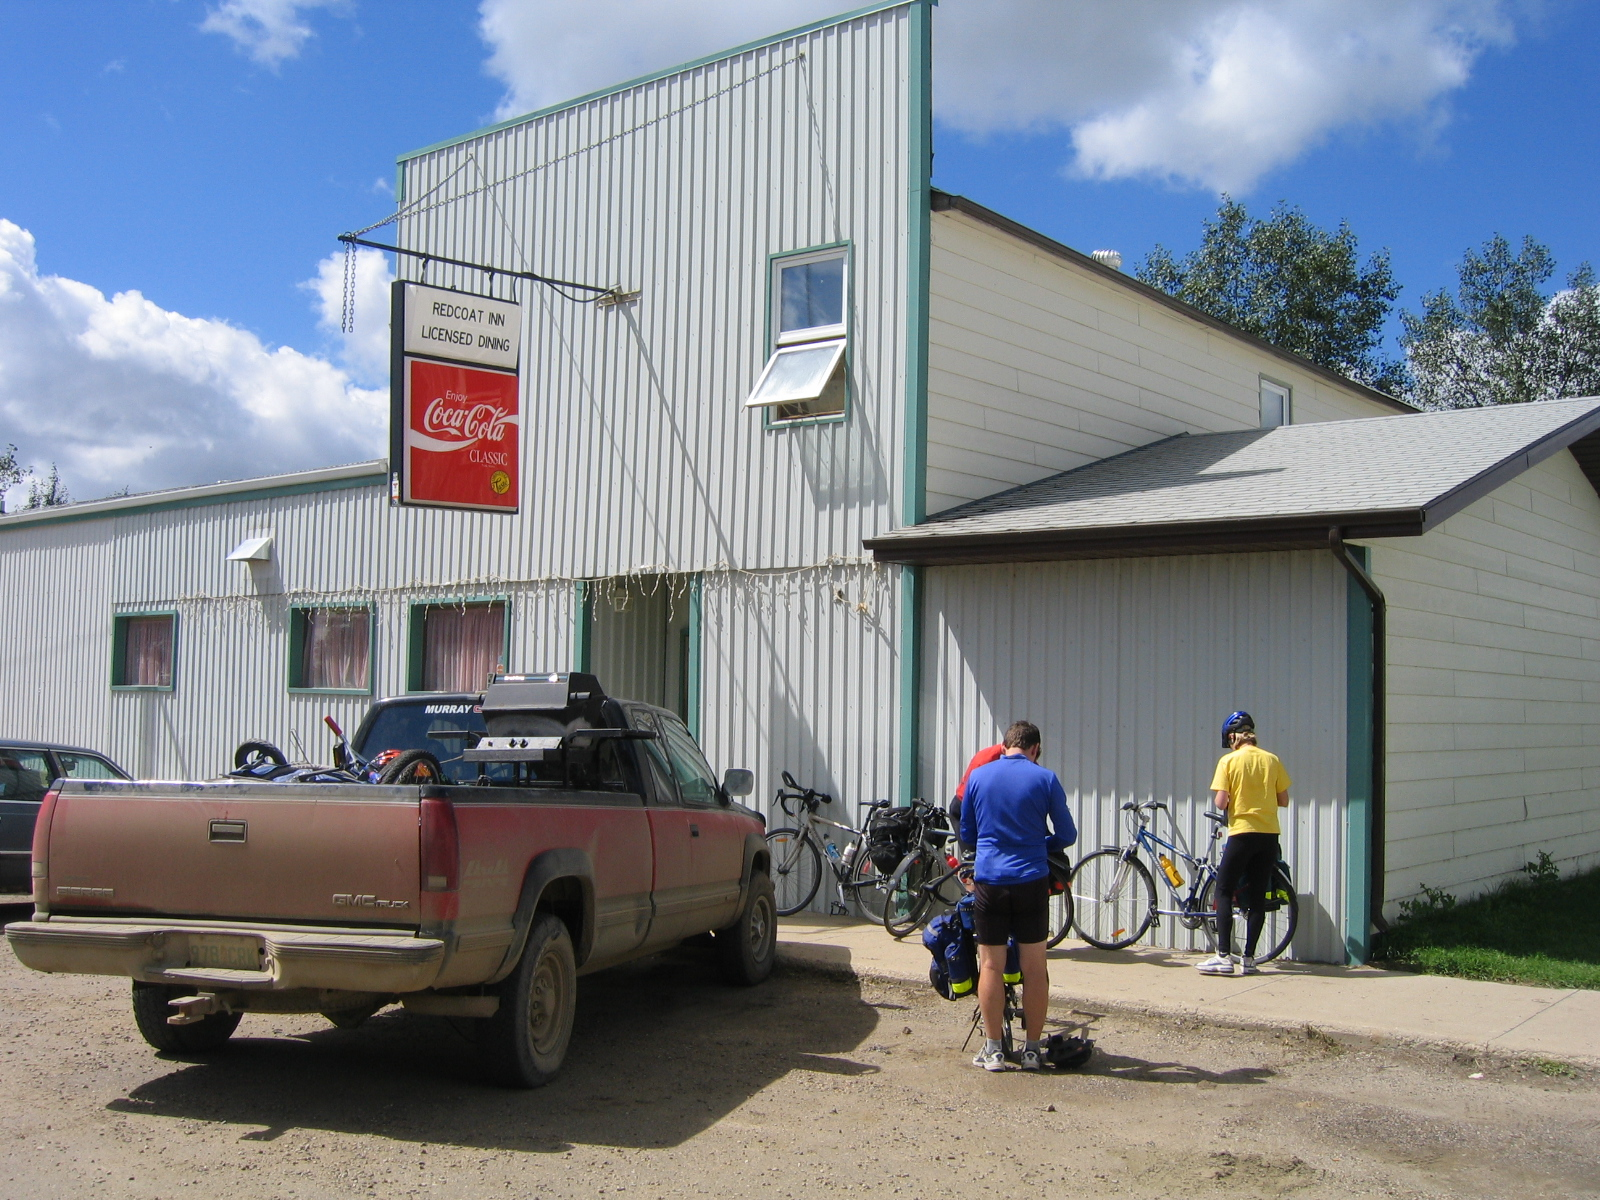 Gravelbourg Saskatchewan | Olin and Suzanne's cycling trip